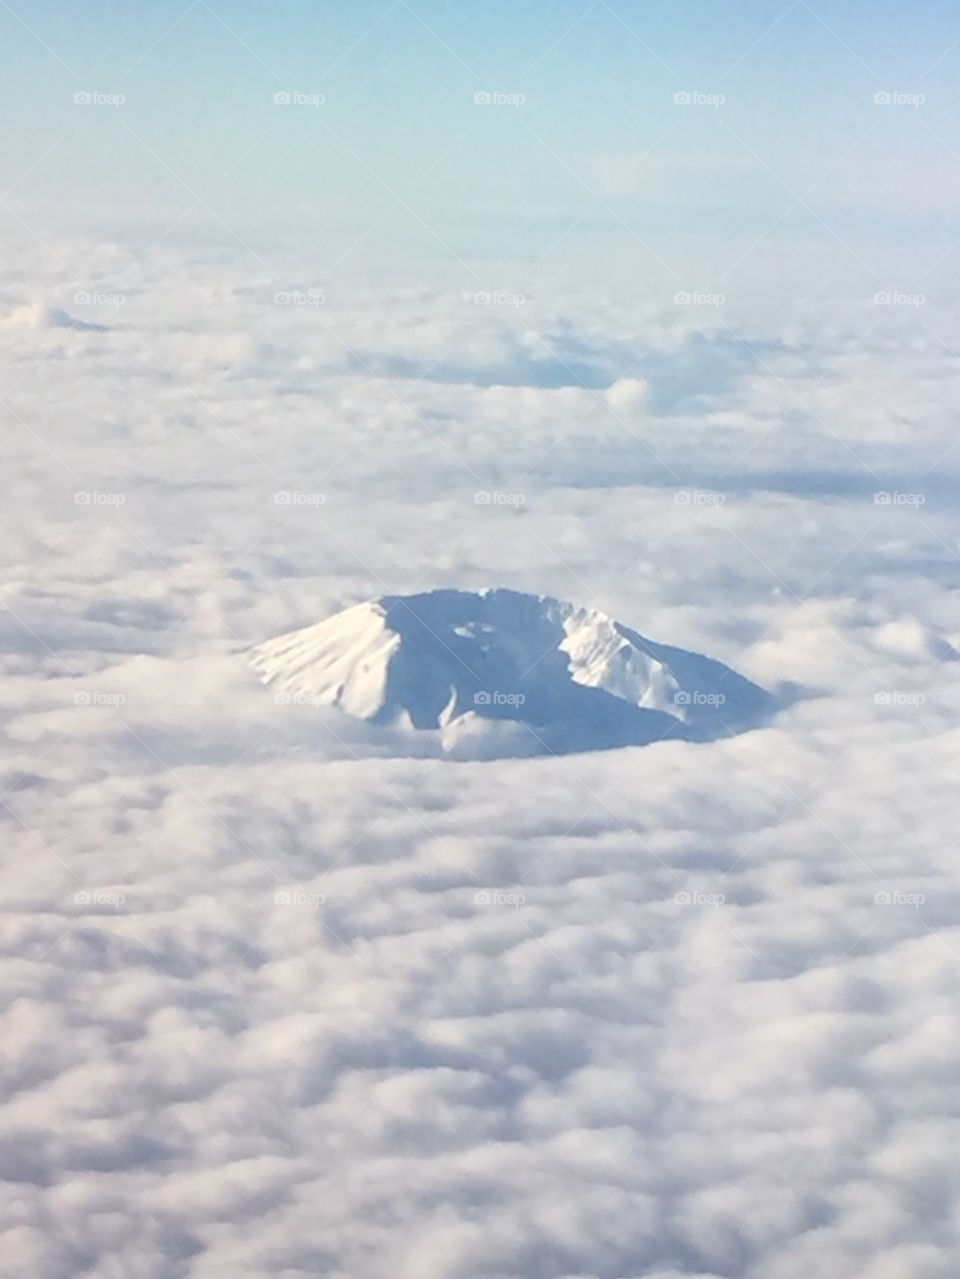 Mt. St. Helens from the air in January 2016